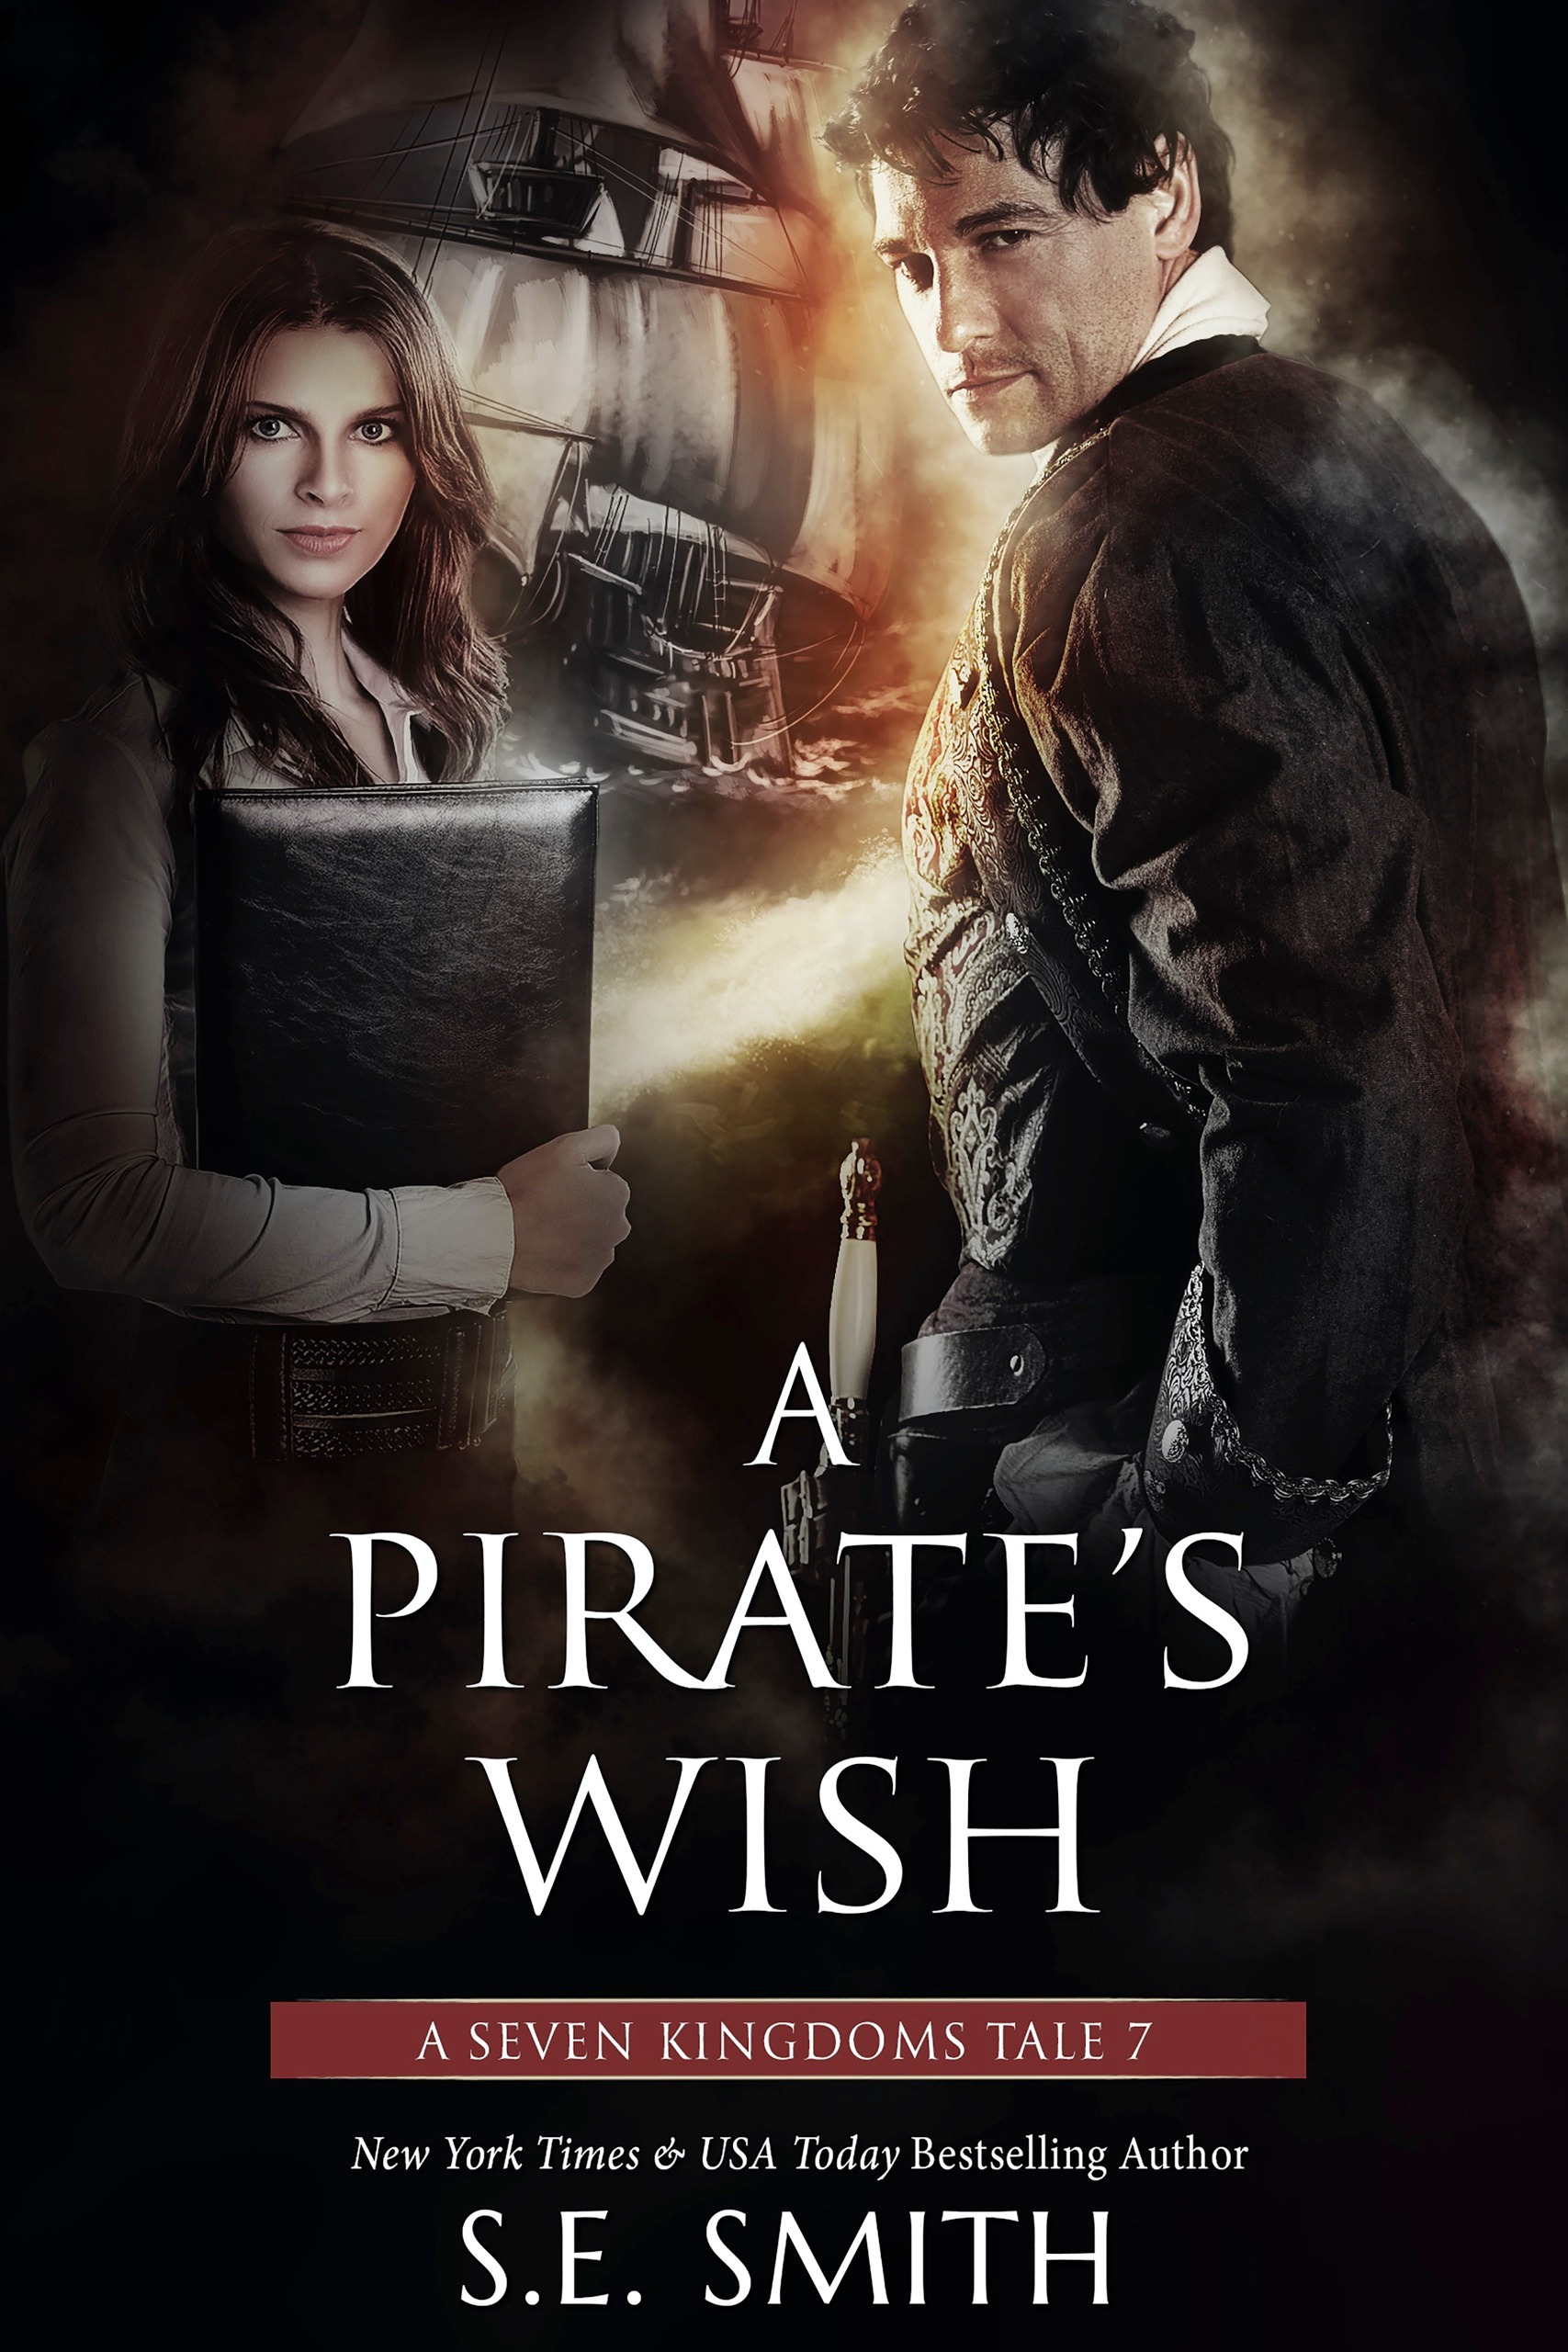 A Pirate's Wish: A Seven Kingdoms Tale 7 (ebook: Kindle and epub)